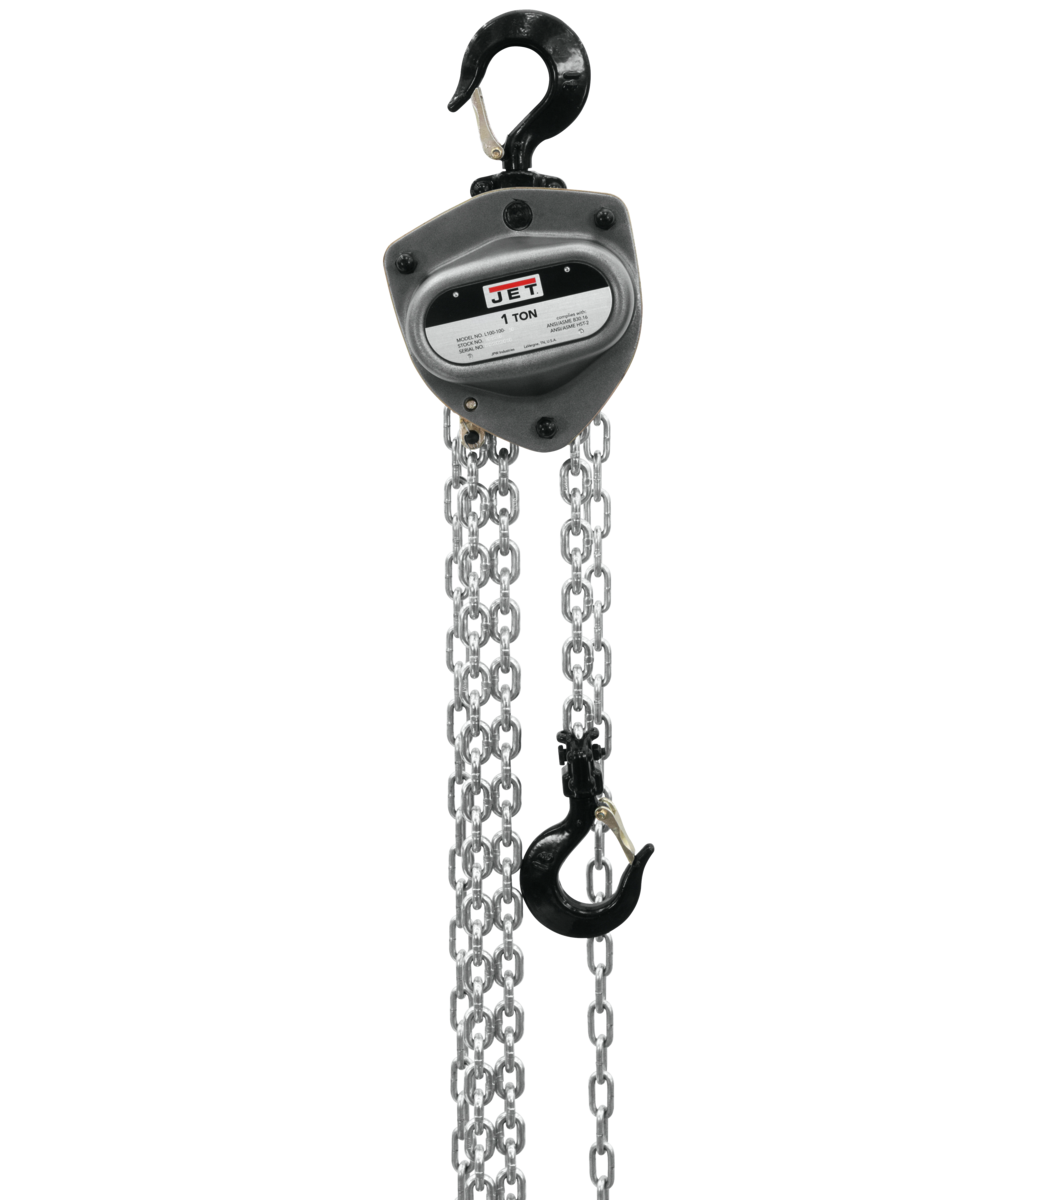 L-100-100WO-30, 1-Ton Hand Chain Hoist With 30' Lift & Overload Protection